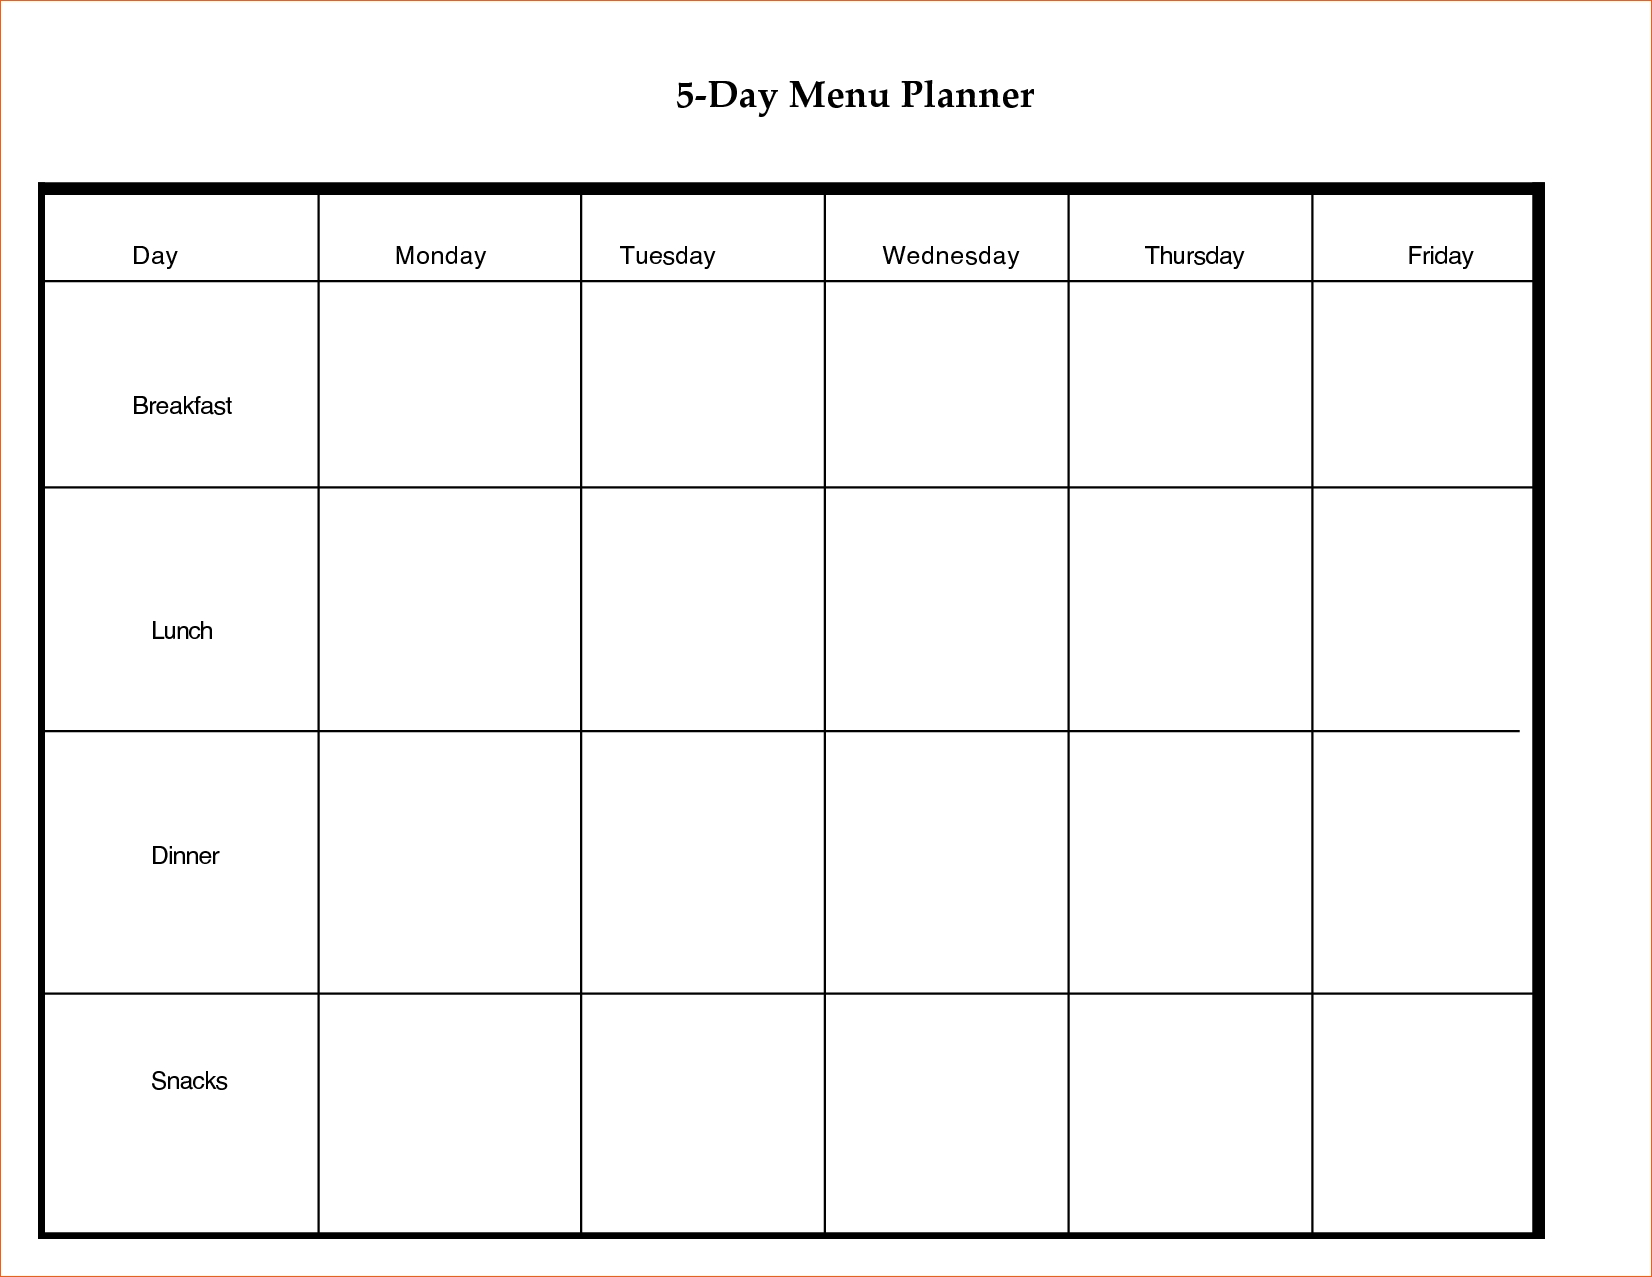 Day Calendar Mplate Memo Formats Planner Hourly Meal Menu Week Trip within 5 Day Weekly Schedule Template